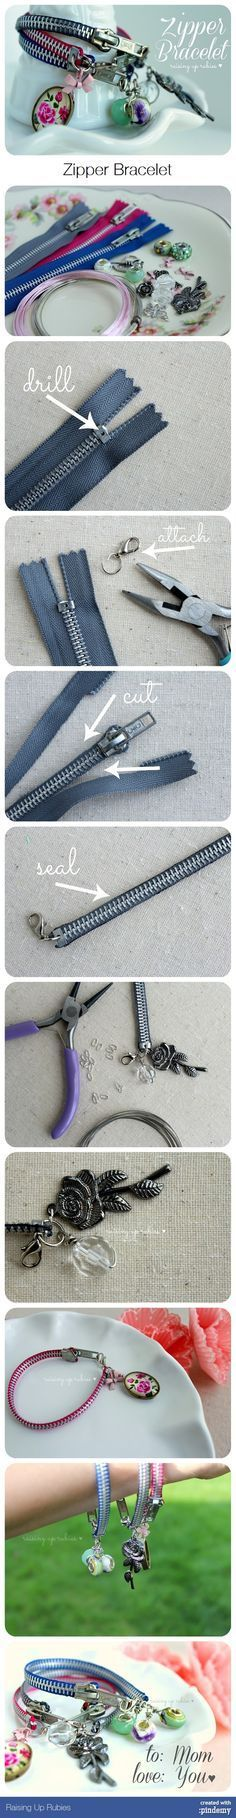 Zipper Bracelet via pindemy.com                                                                                                                                                      More